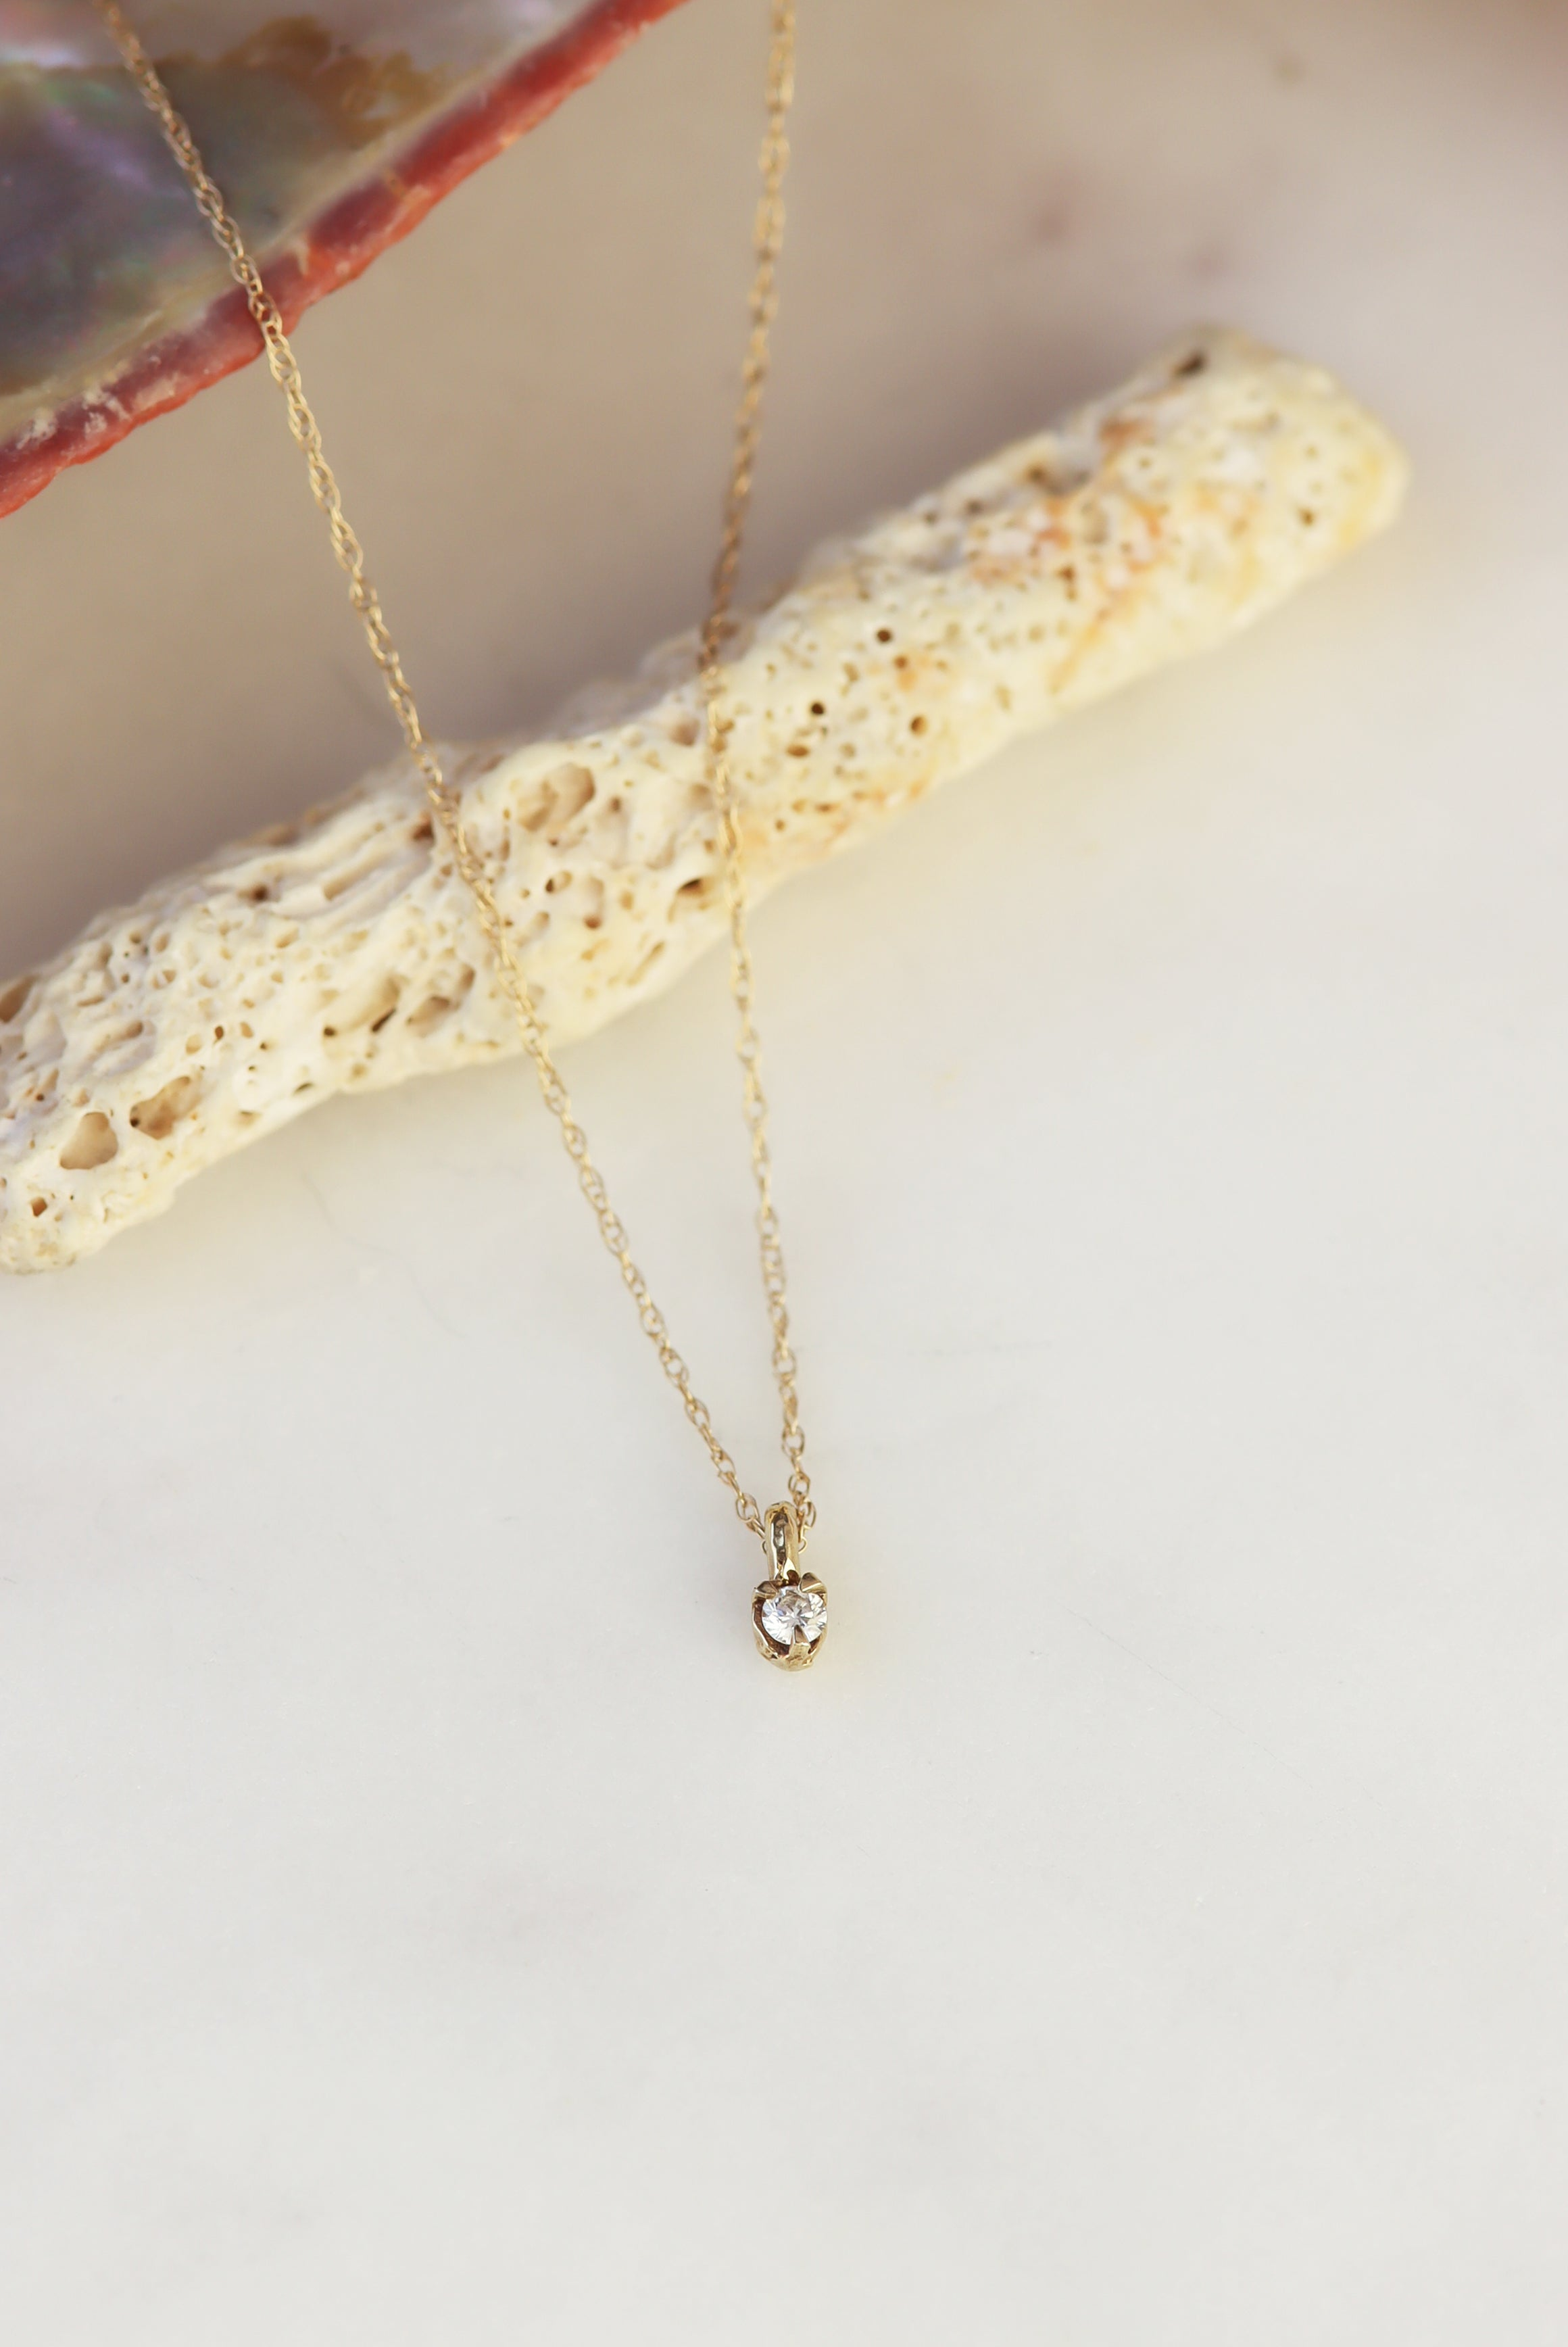 3-Must-Have-Necklaces-For-Your-Next-Beach-Visit-dainty-diamond-necklace